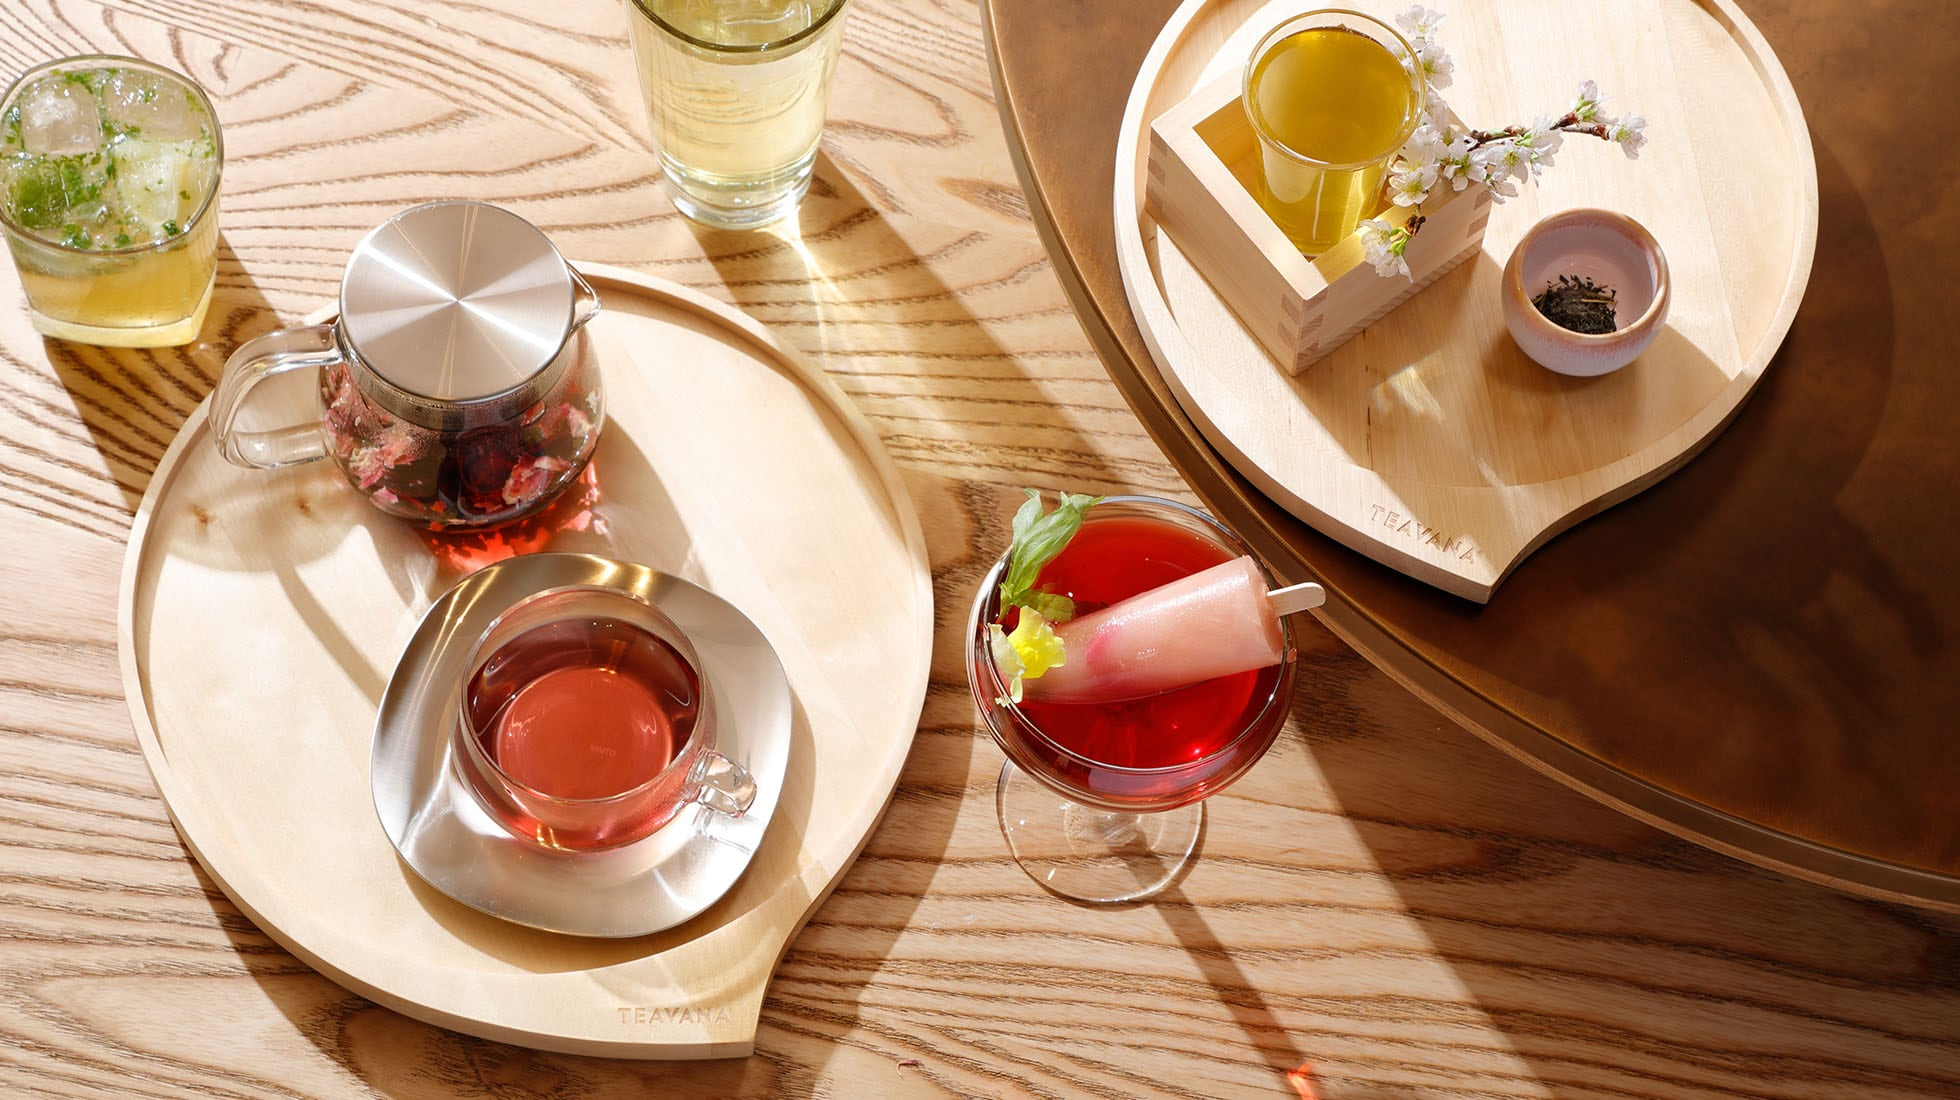 Image of a variety of hot and iced tea beverages on a wood table with two Teavana serving trays